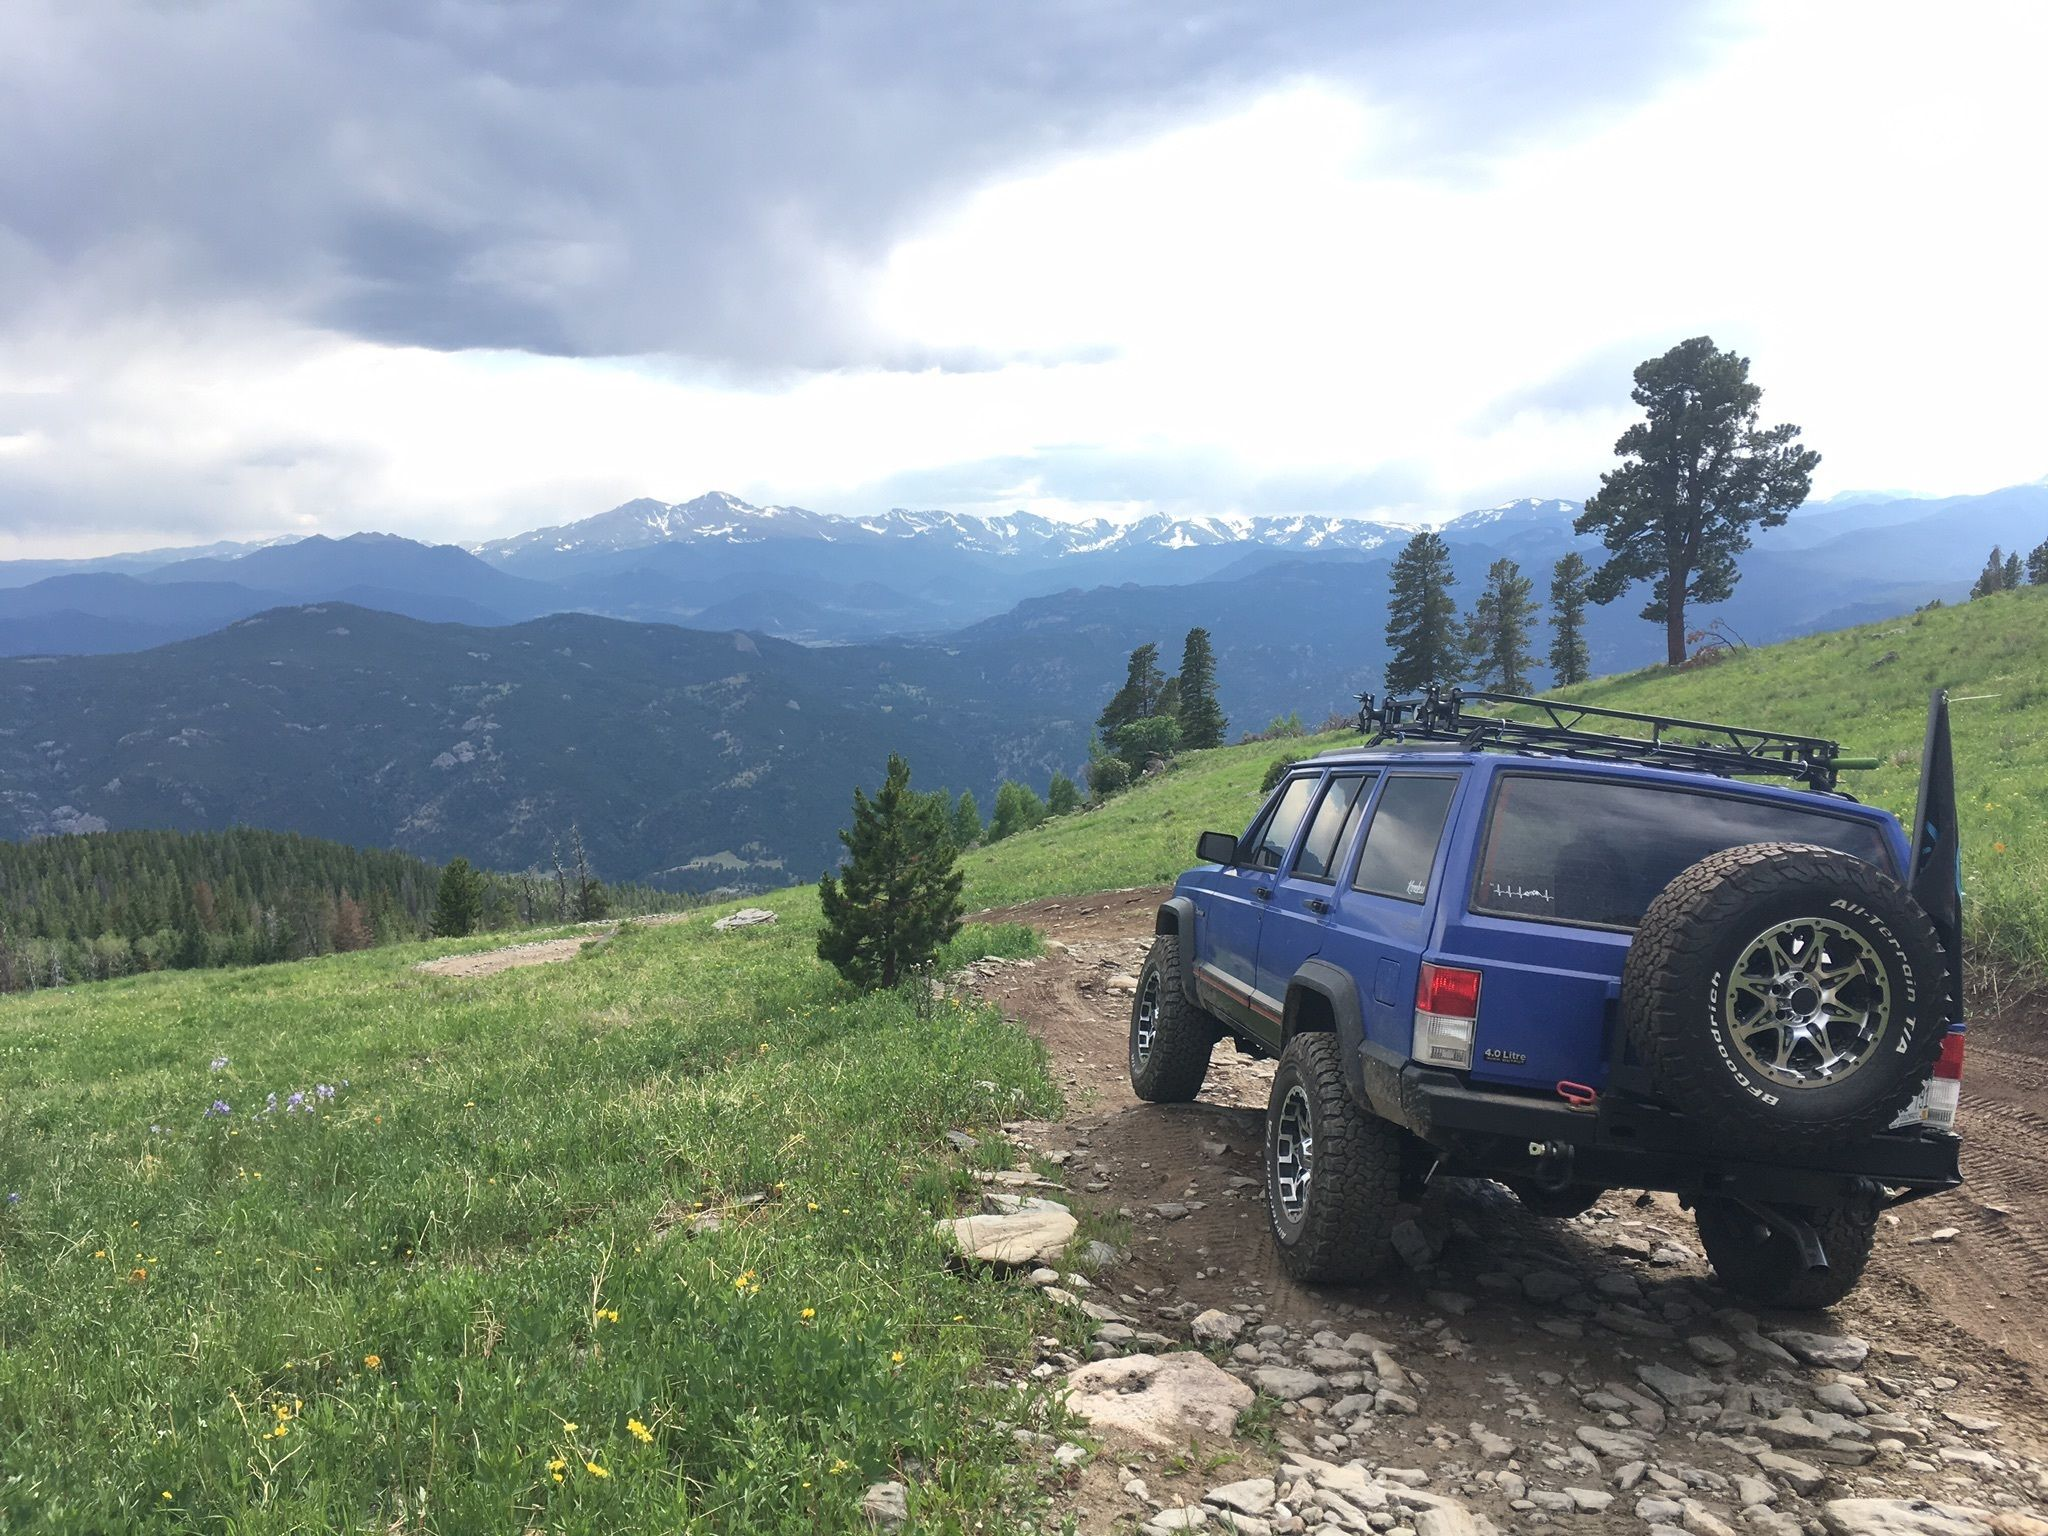 Best OHV / Off Road Driving Trails in Colorado | AllTrails Vail Co Off Road Maps on arapahoe basin co map, minturn co map, maricopa co map, park city co map, durango co map, fraser co map, cottonwood co map, mount evans co map, southglenn co map, molina co map, cherry hills co map, maroon bells co map, placer valley co map, gilpin county co map, floyd hill co map, monarch pass co map, coal creek co map, red rock co map, young co map, vernon co map,